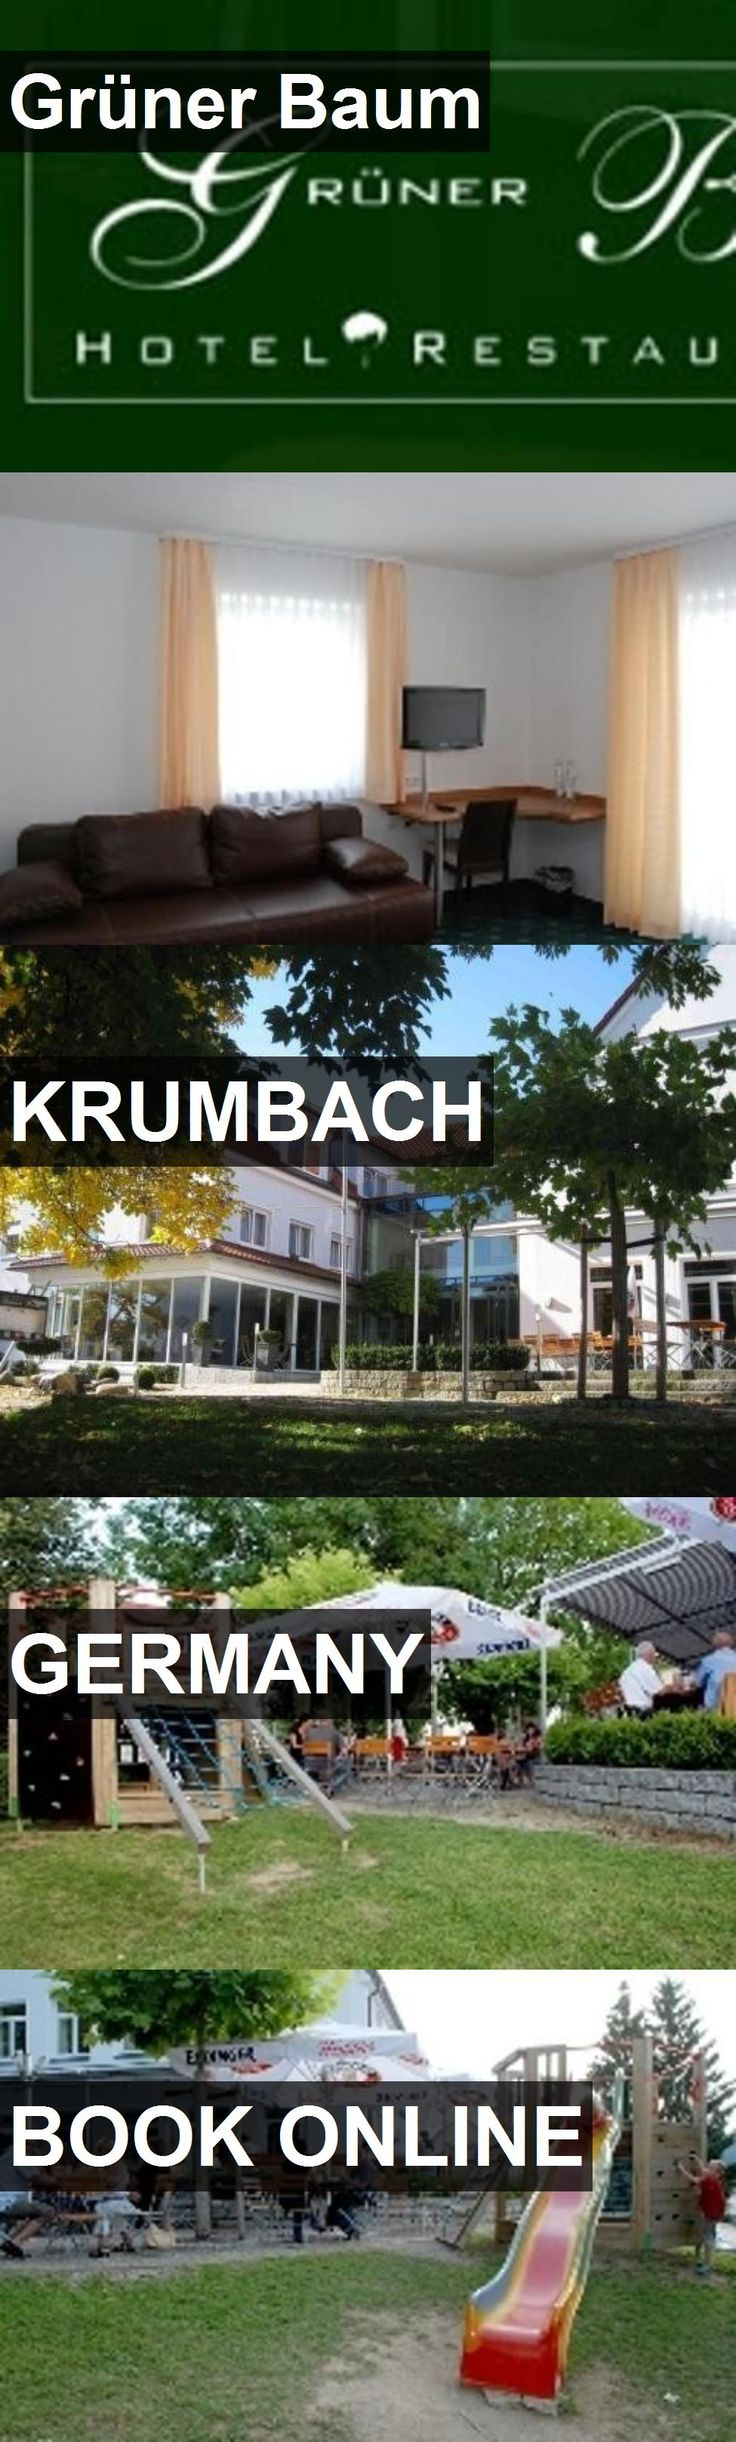 Hotel Grüner Baum in Krumbach, Germany. For more information, photos, reviews and best prices please follow the link. #Germany #Krumbach #GrünerBaum #hotel #travel #vacation